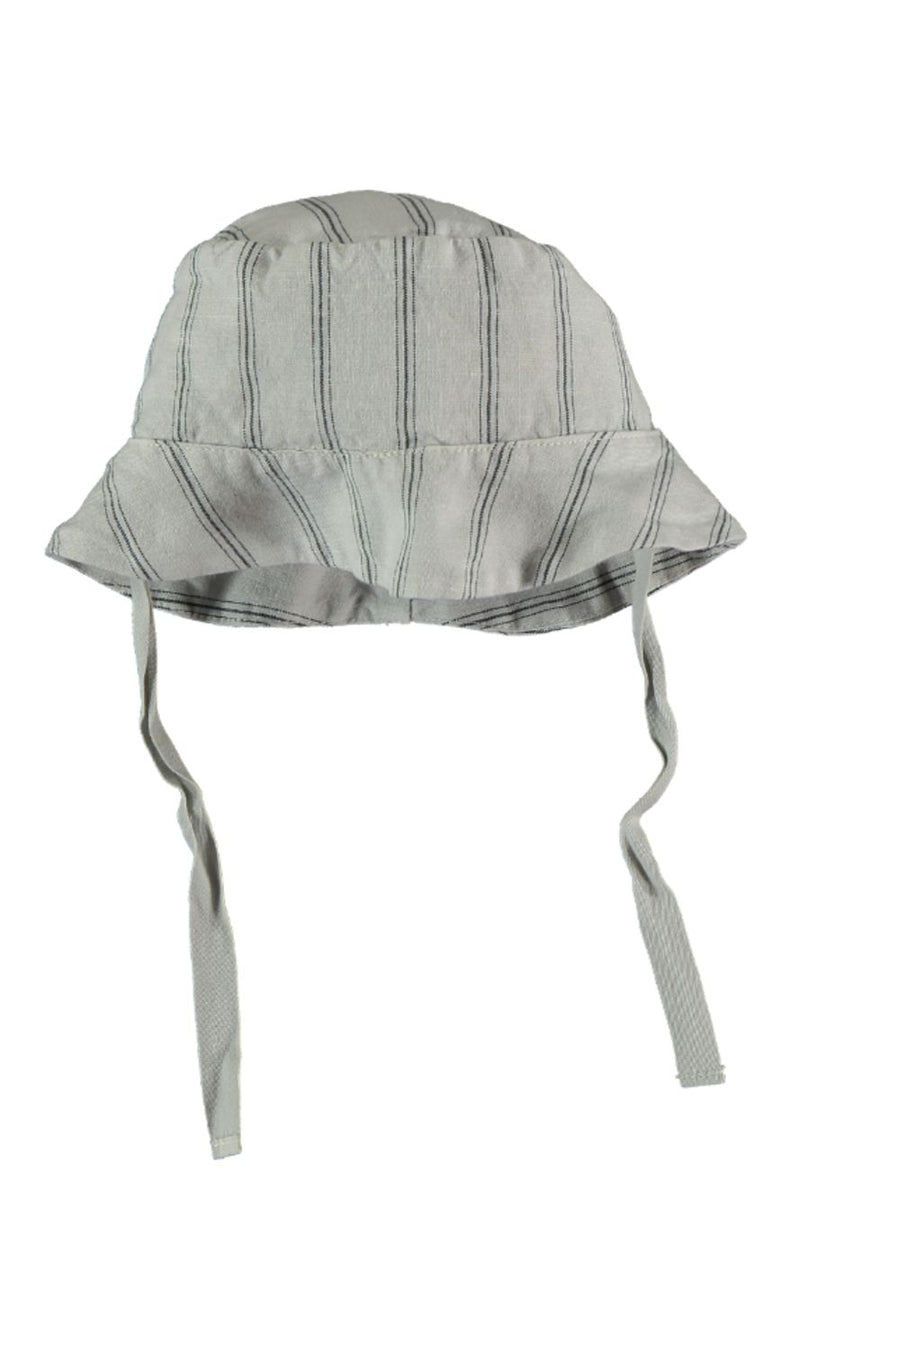 STRIPED BABY SUN HAT